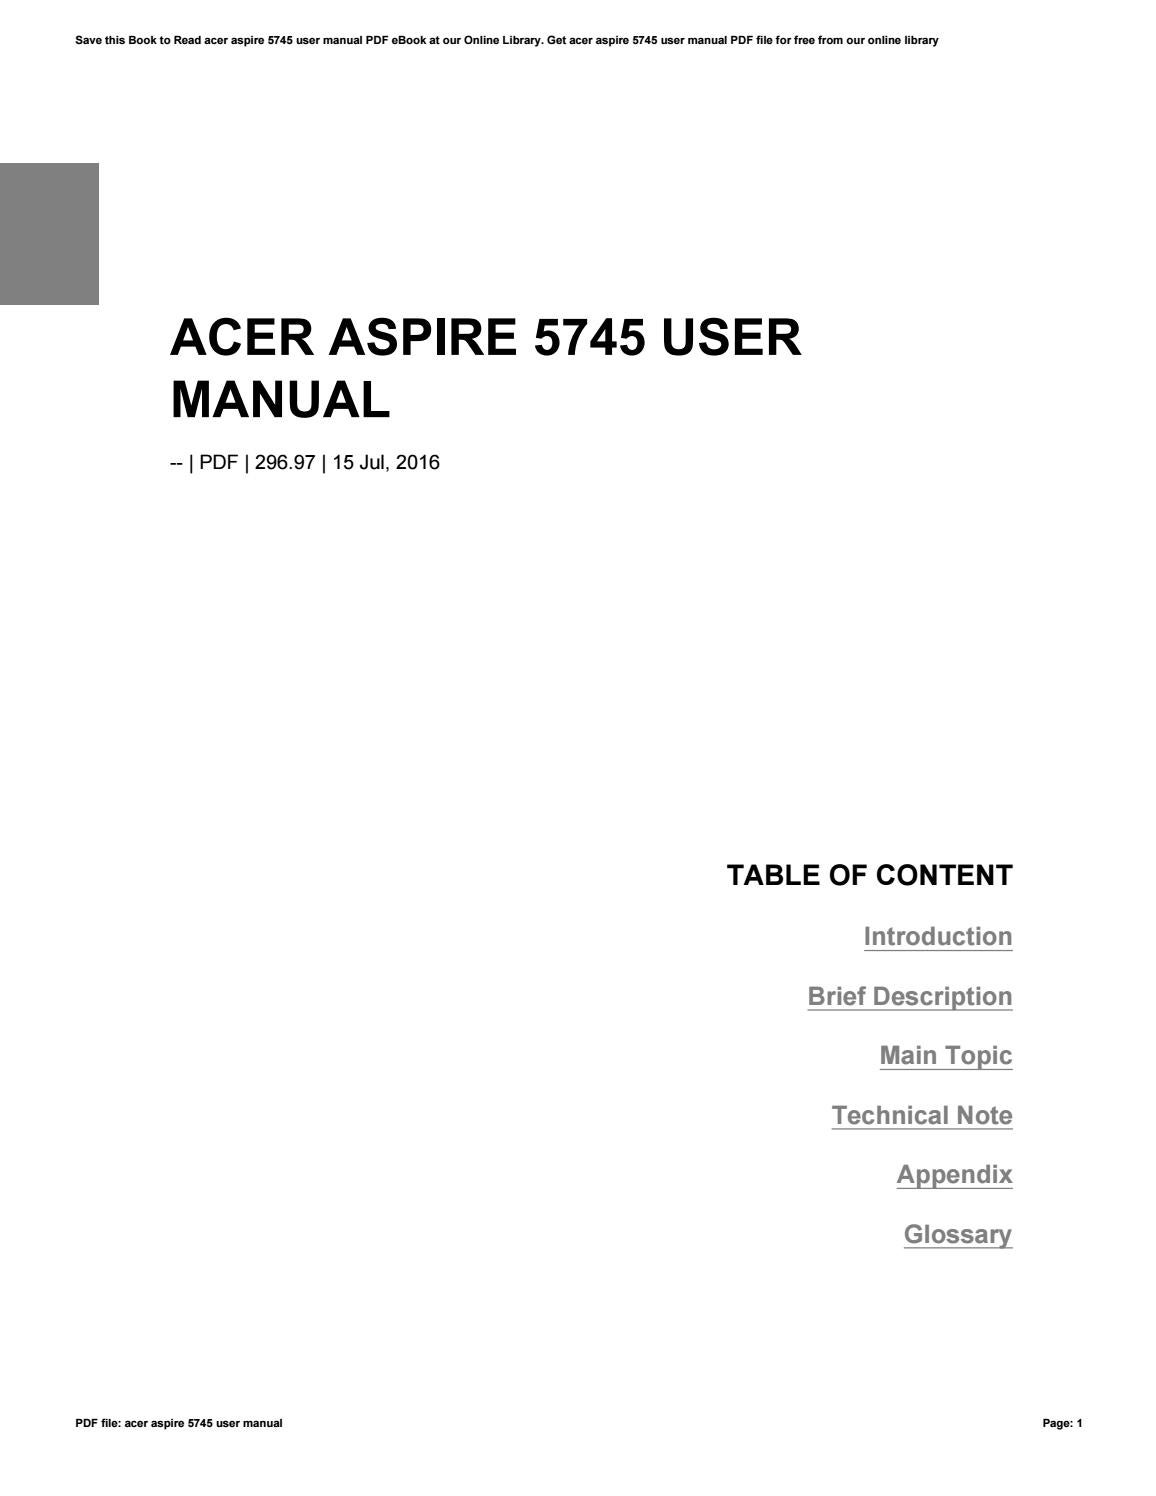 acer aspire 3 user manual